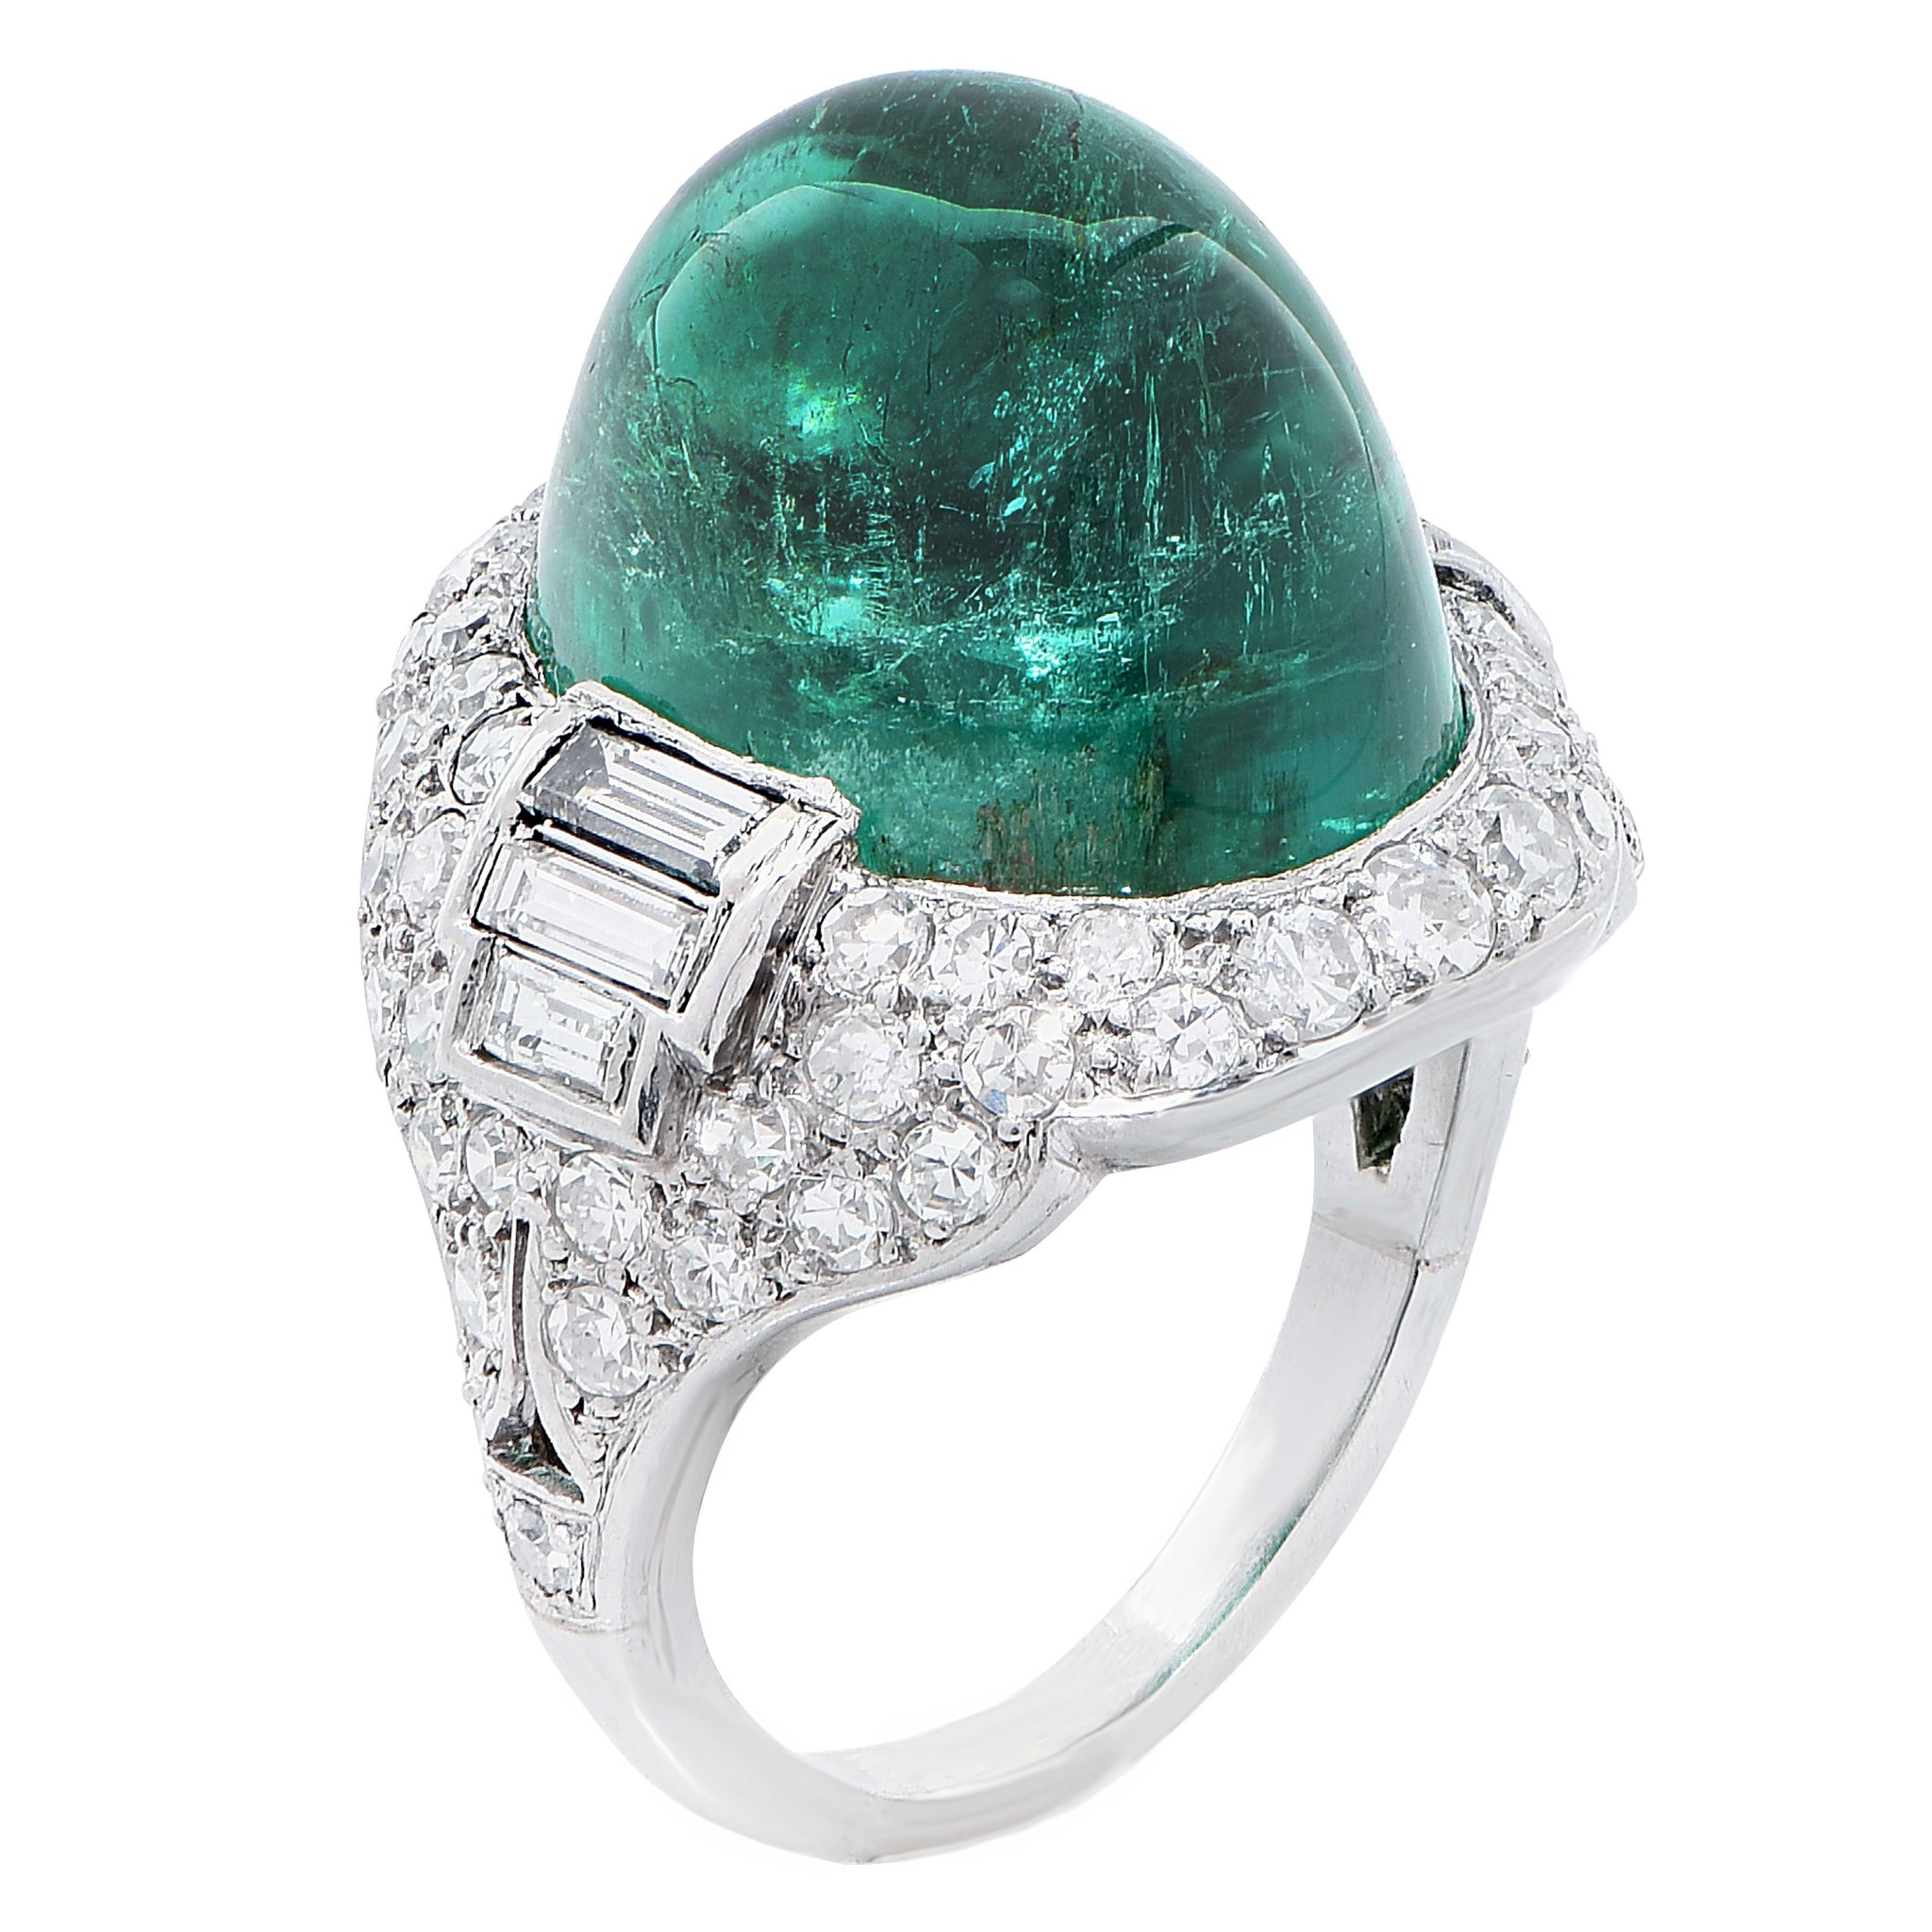 mens diamond gold ring certified columbian natural emerald white p in fullxfull il felm